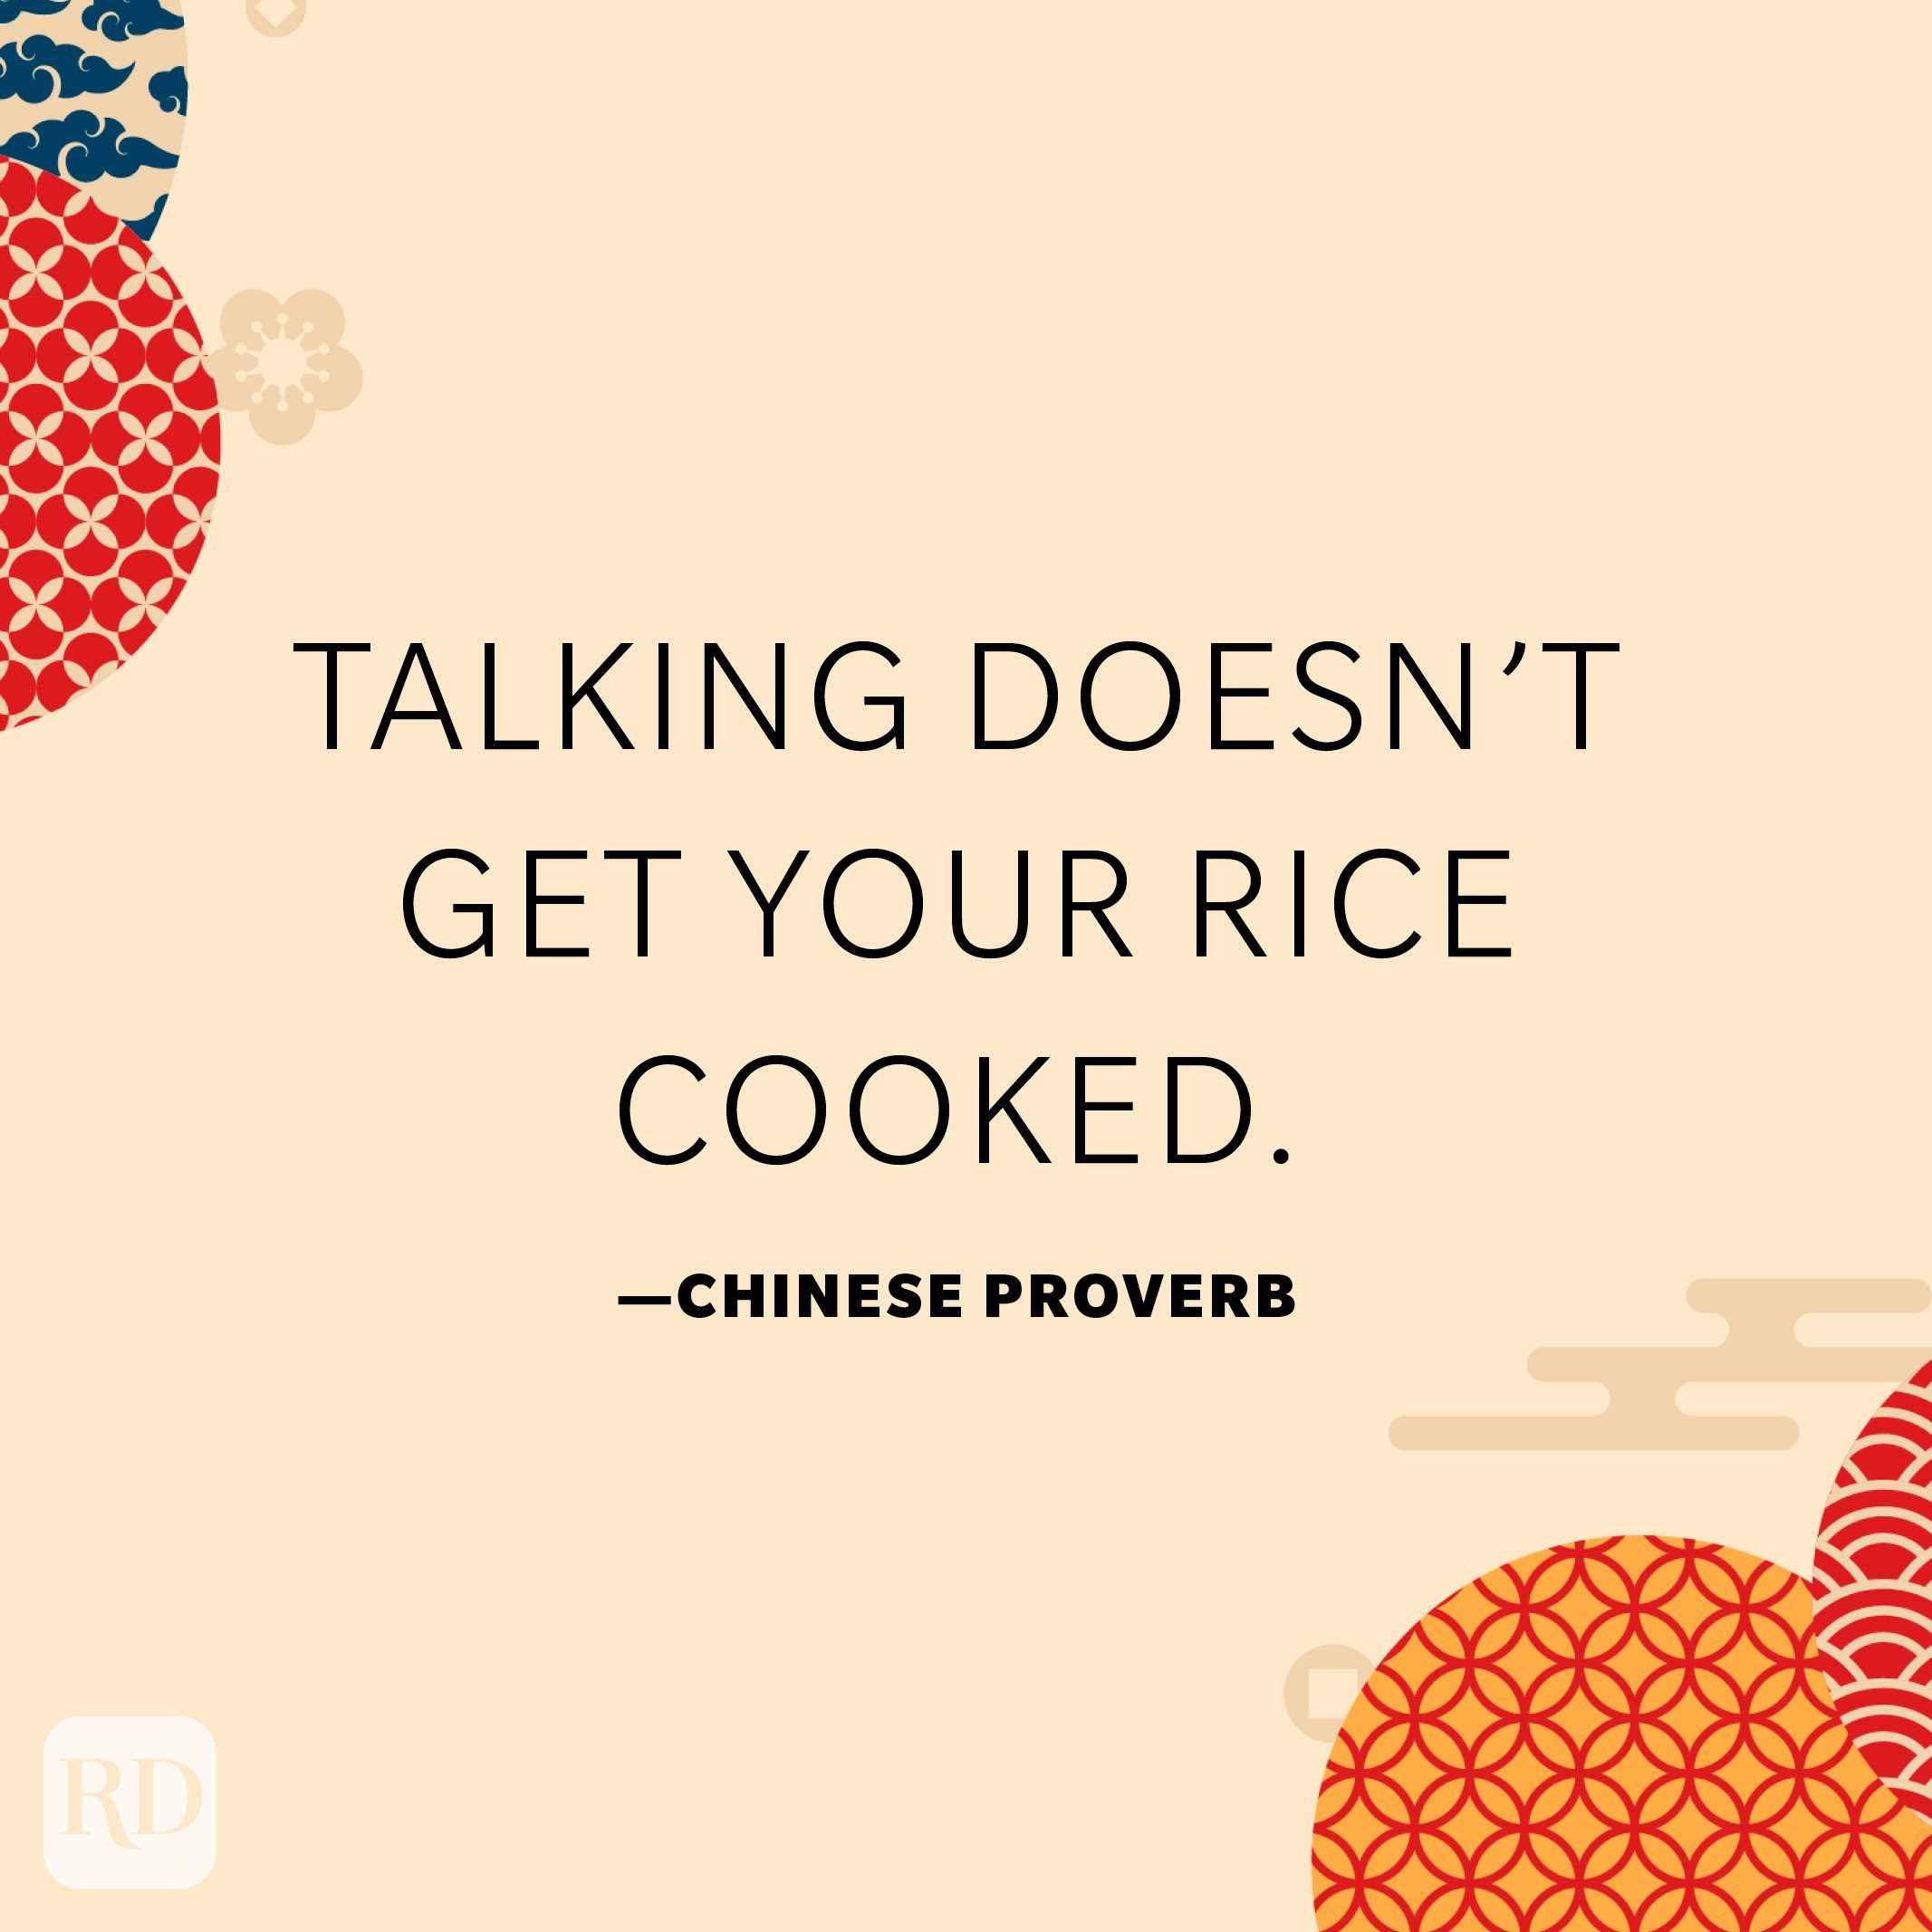 Talking doesn't get your rice cooked